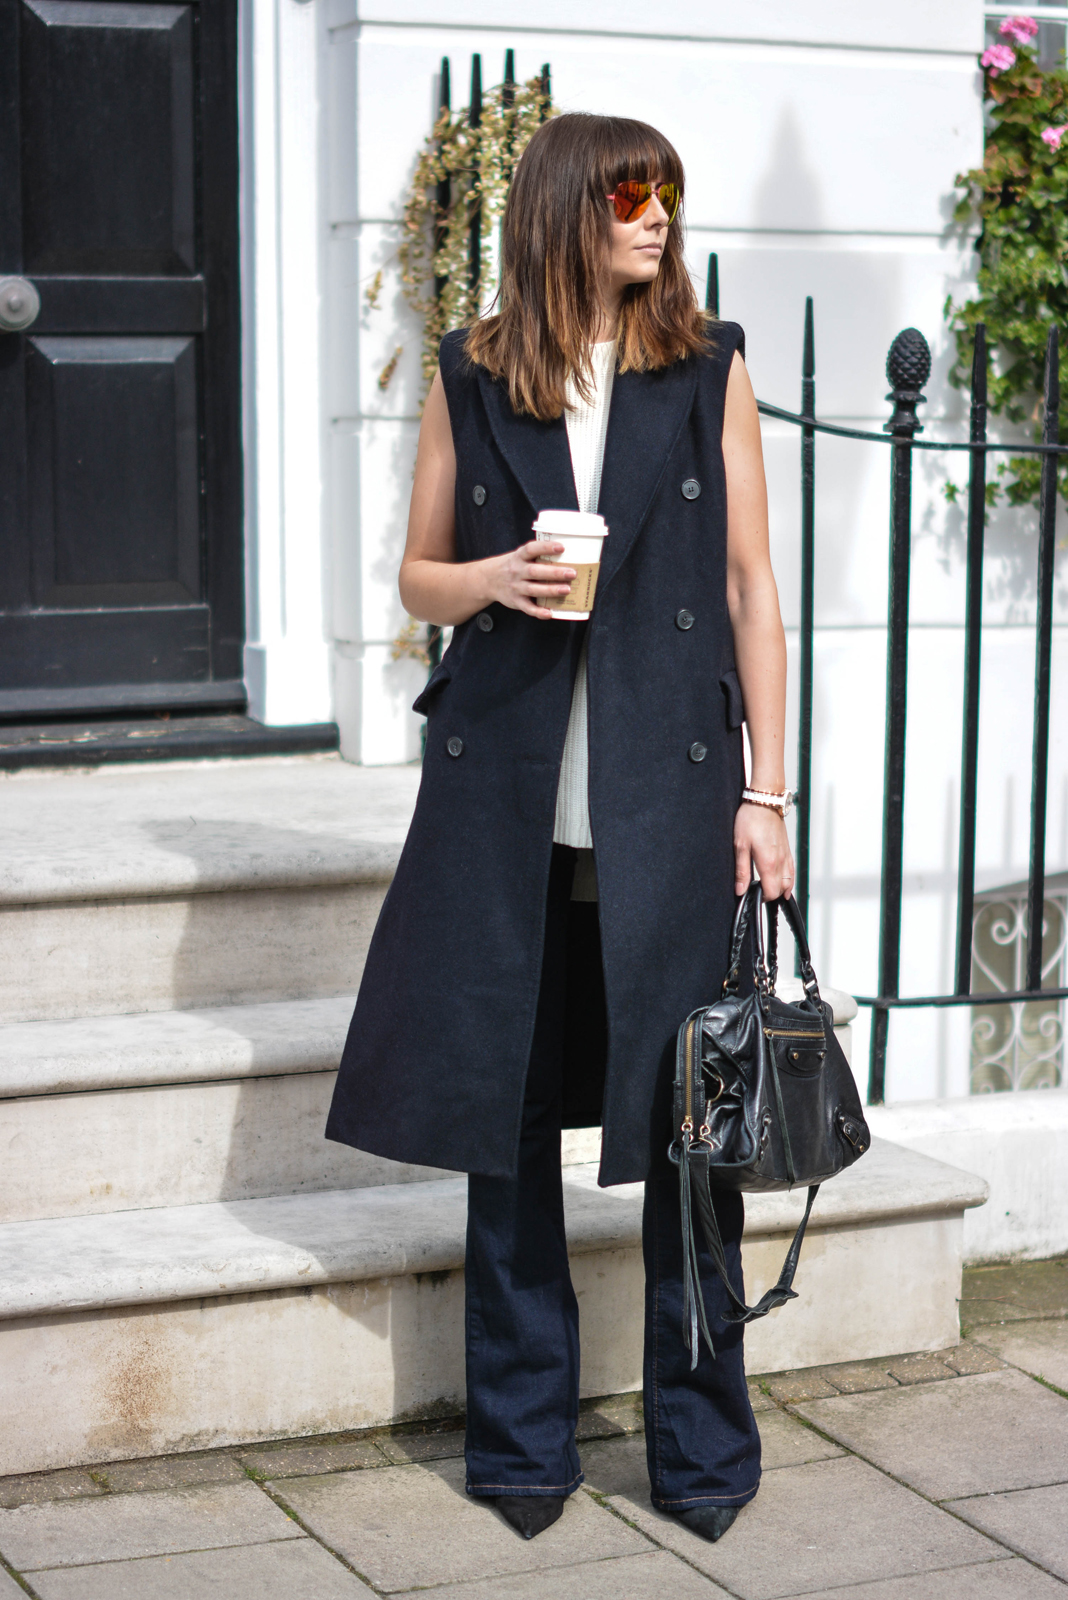 EJSTYLE - Emma Hill, H&M Studio sleeveless coat, flare jeans, Kurt Geiger aviator sunglasses, Balenciaga le city bag, Pointed black suede court shoes heels, spring style, OOTD